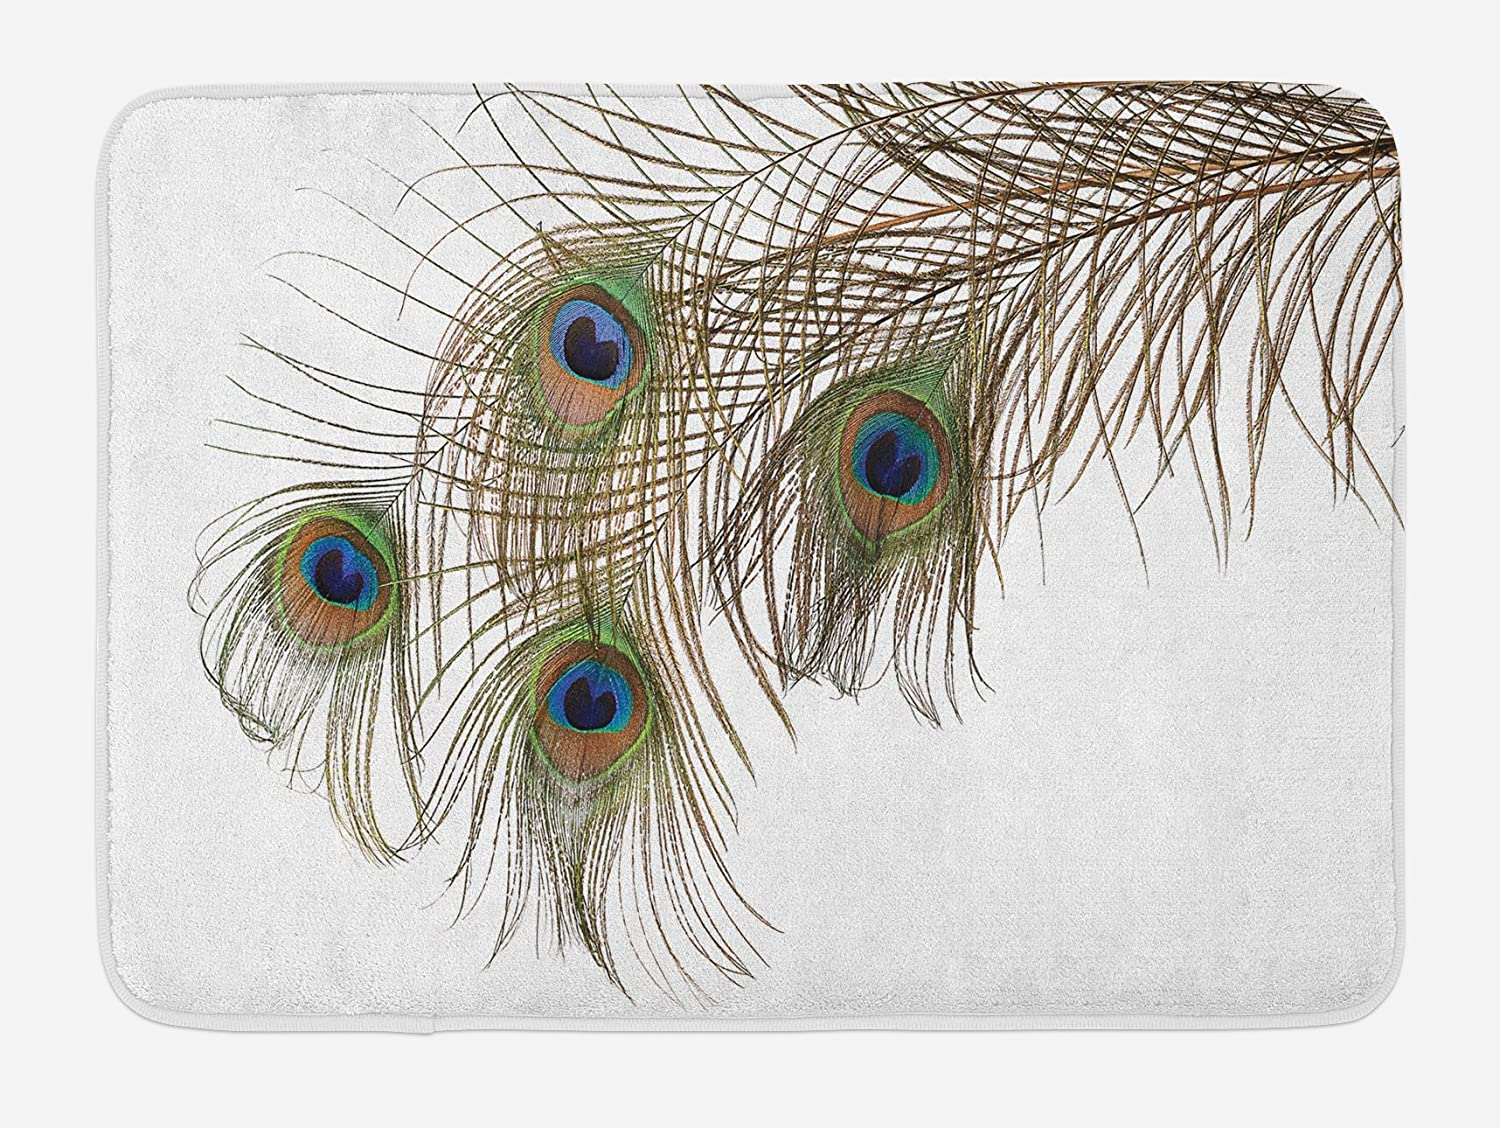 Amazon Com Lunarable Peacock Bath Mat Feather Of Peacock Power Rising Out Of Theshes Creature Plush Bathroom Decor Mat With Non Slip Backing 29 5 X 17 5 White Green Kitchen Dining